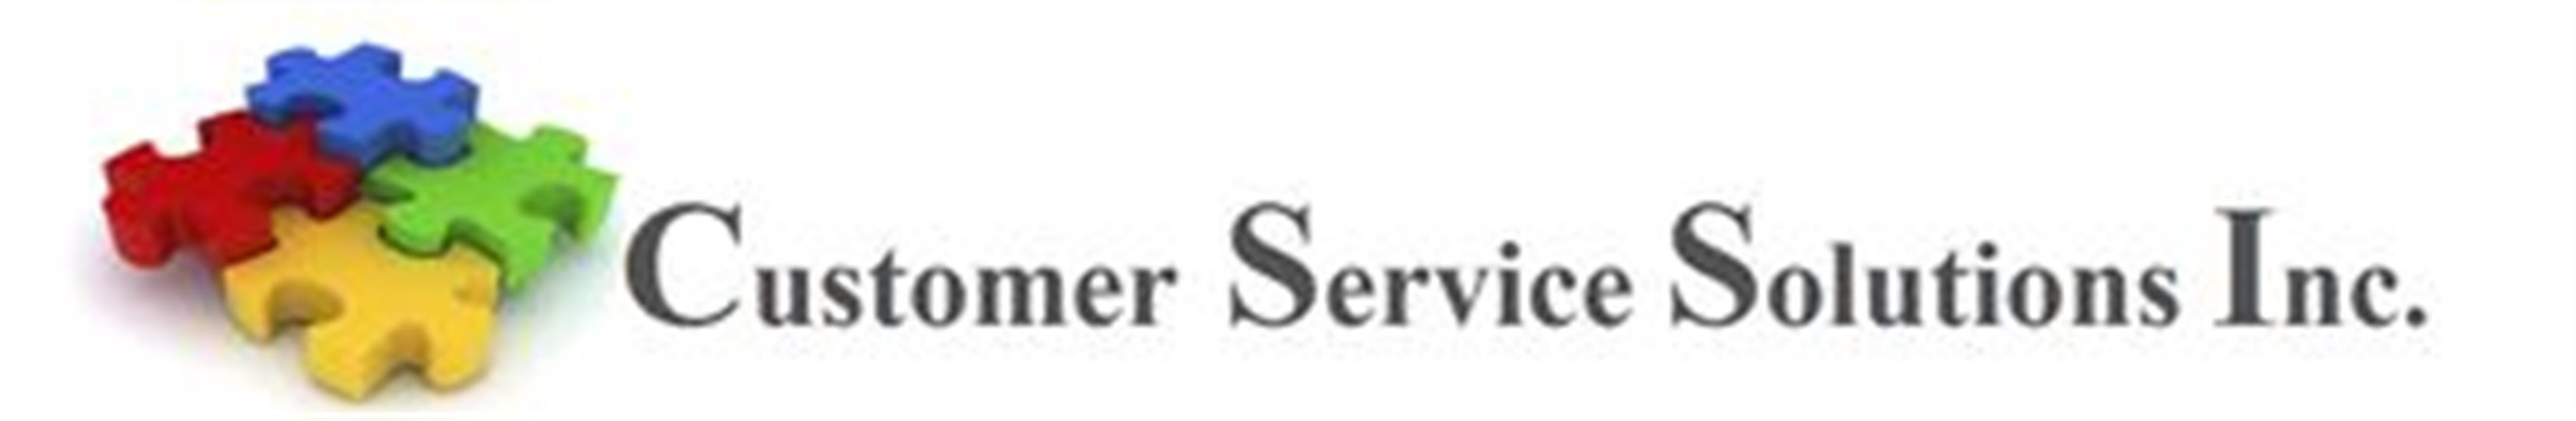 Customer Service Solutions Inc.